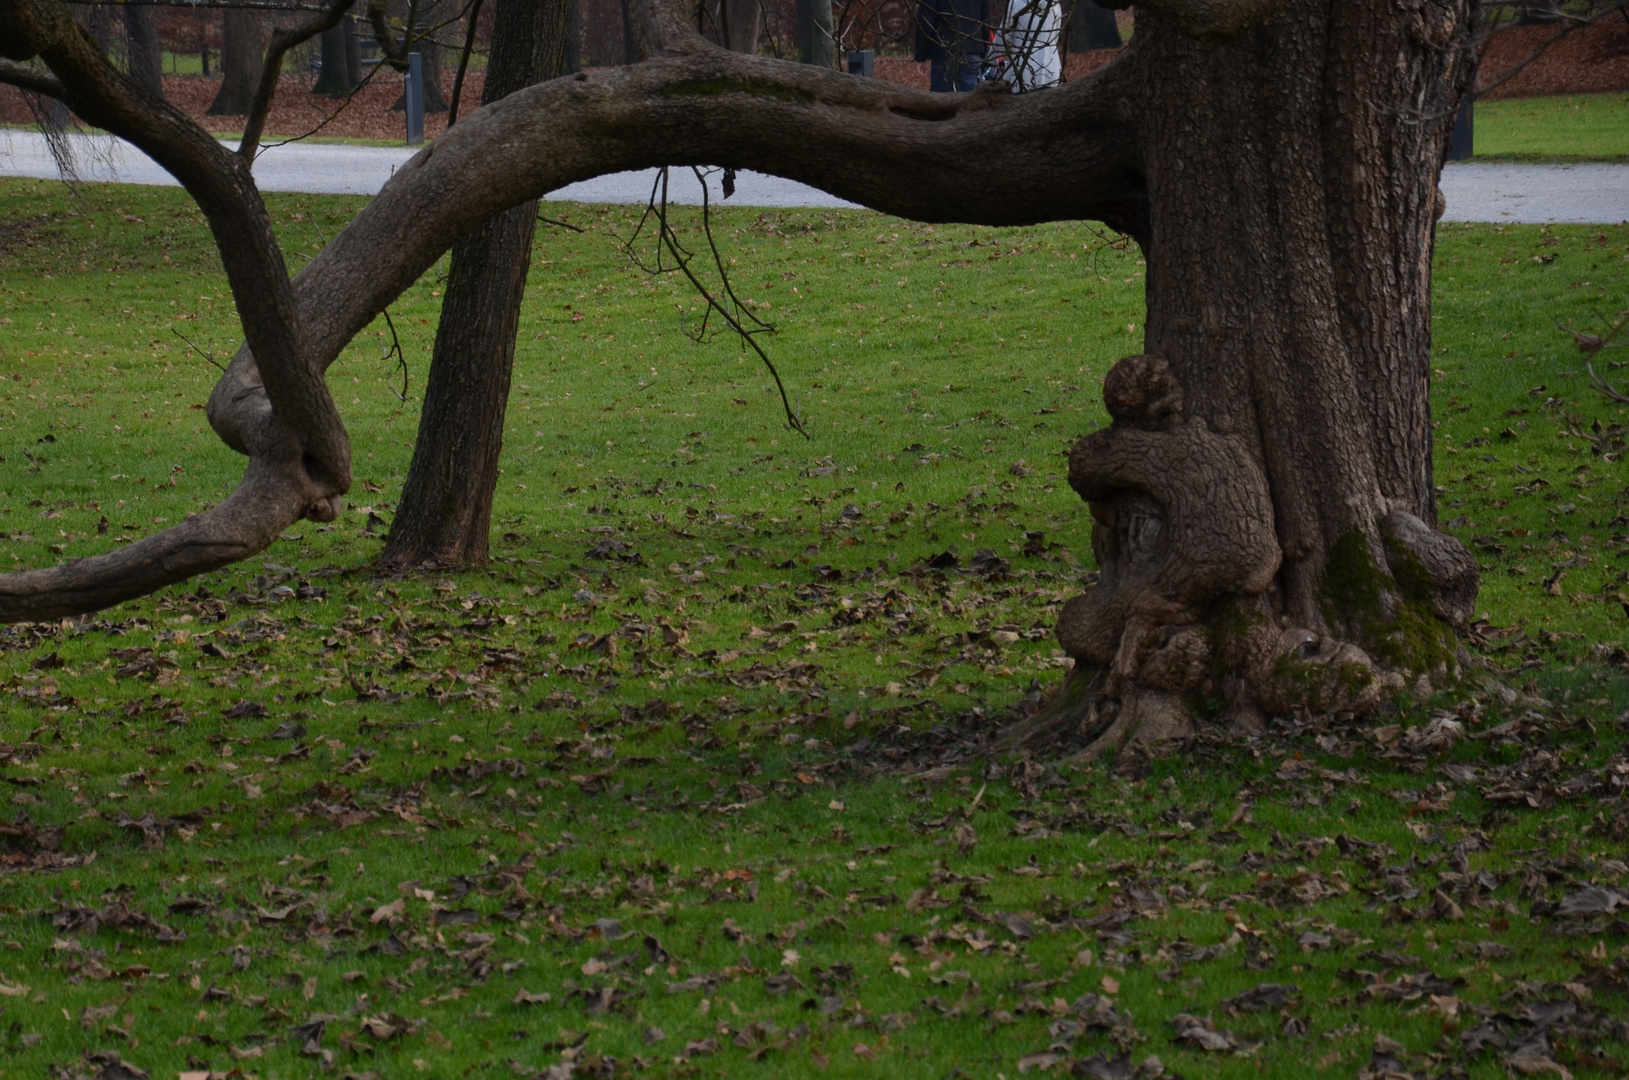 The sad little girl and the tree